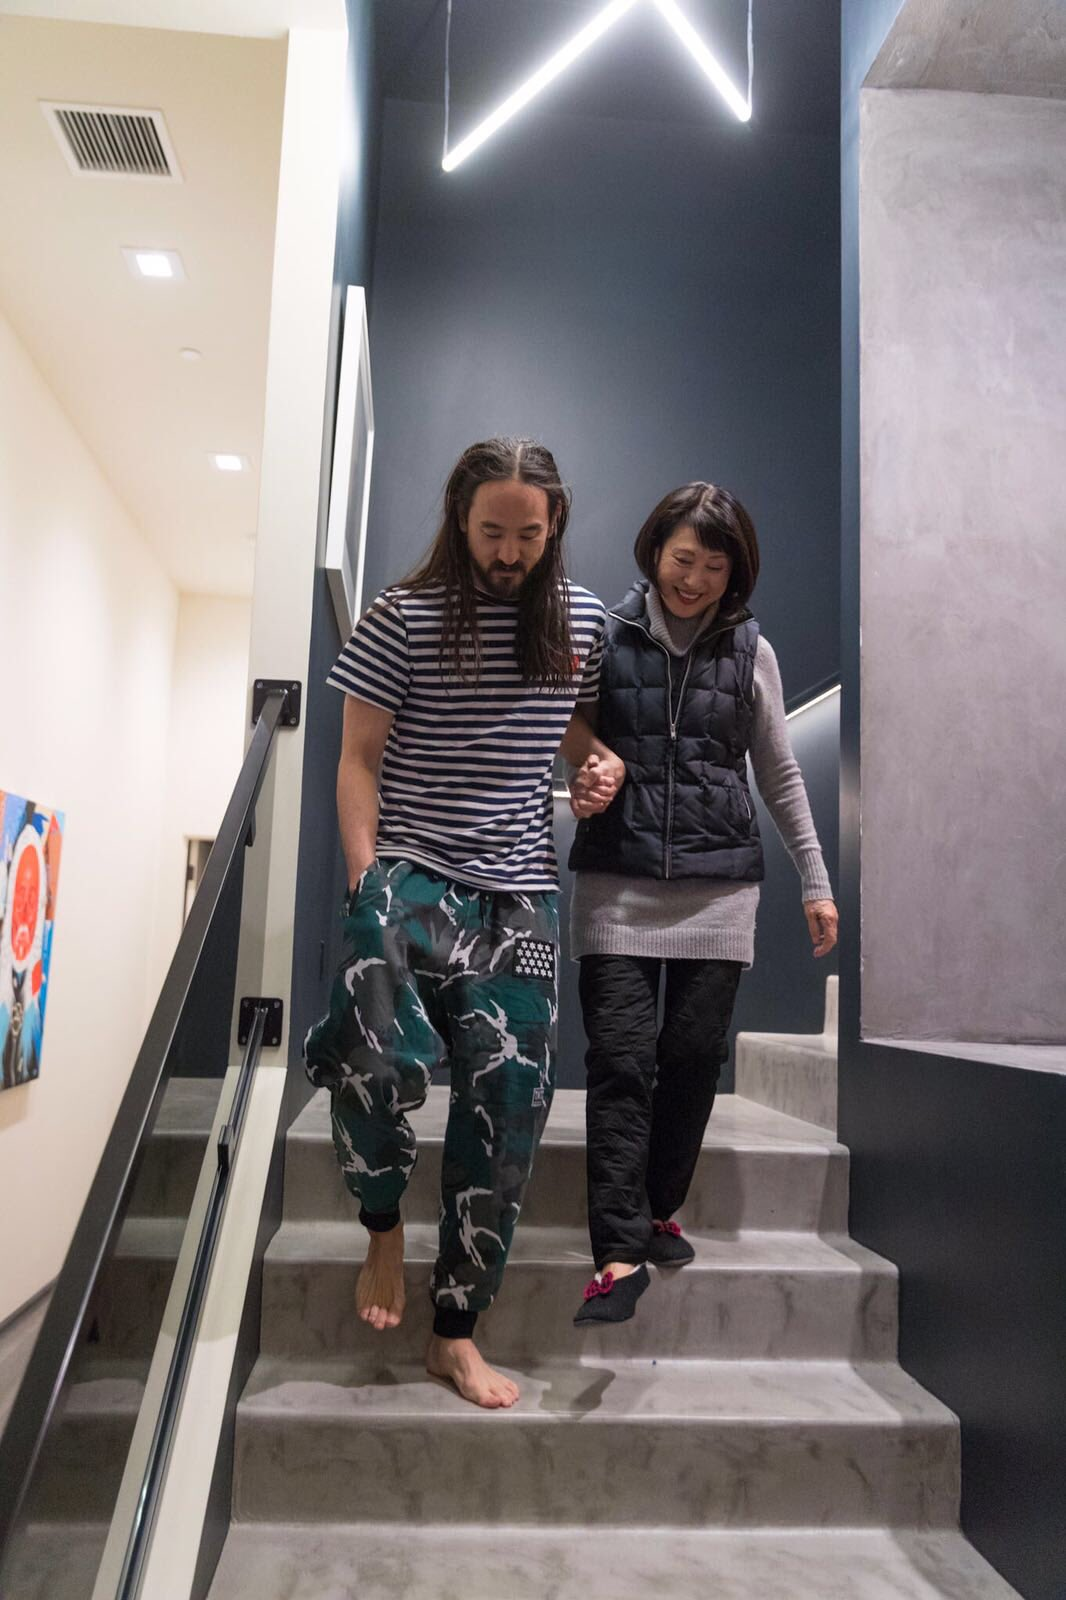 Me and my mama https://t.co/z2zDC0hyE2